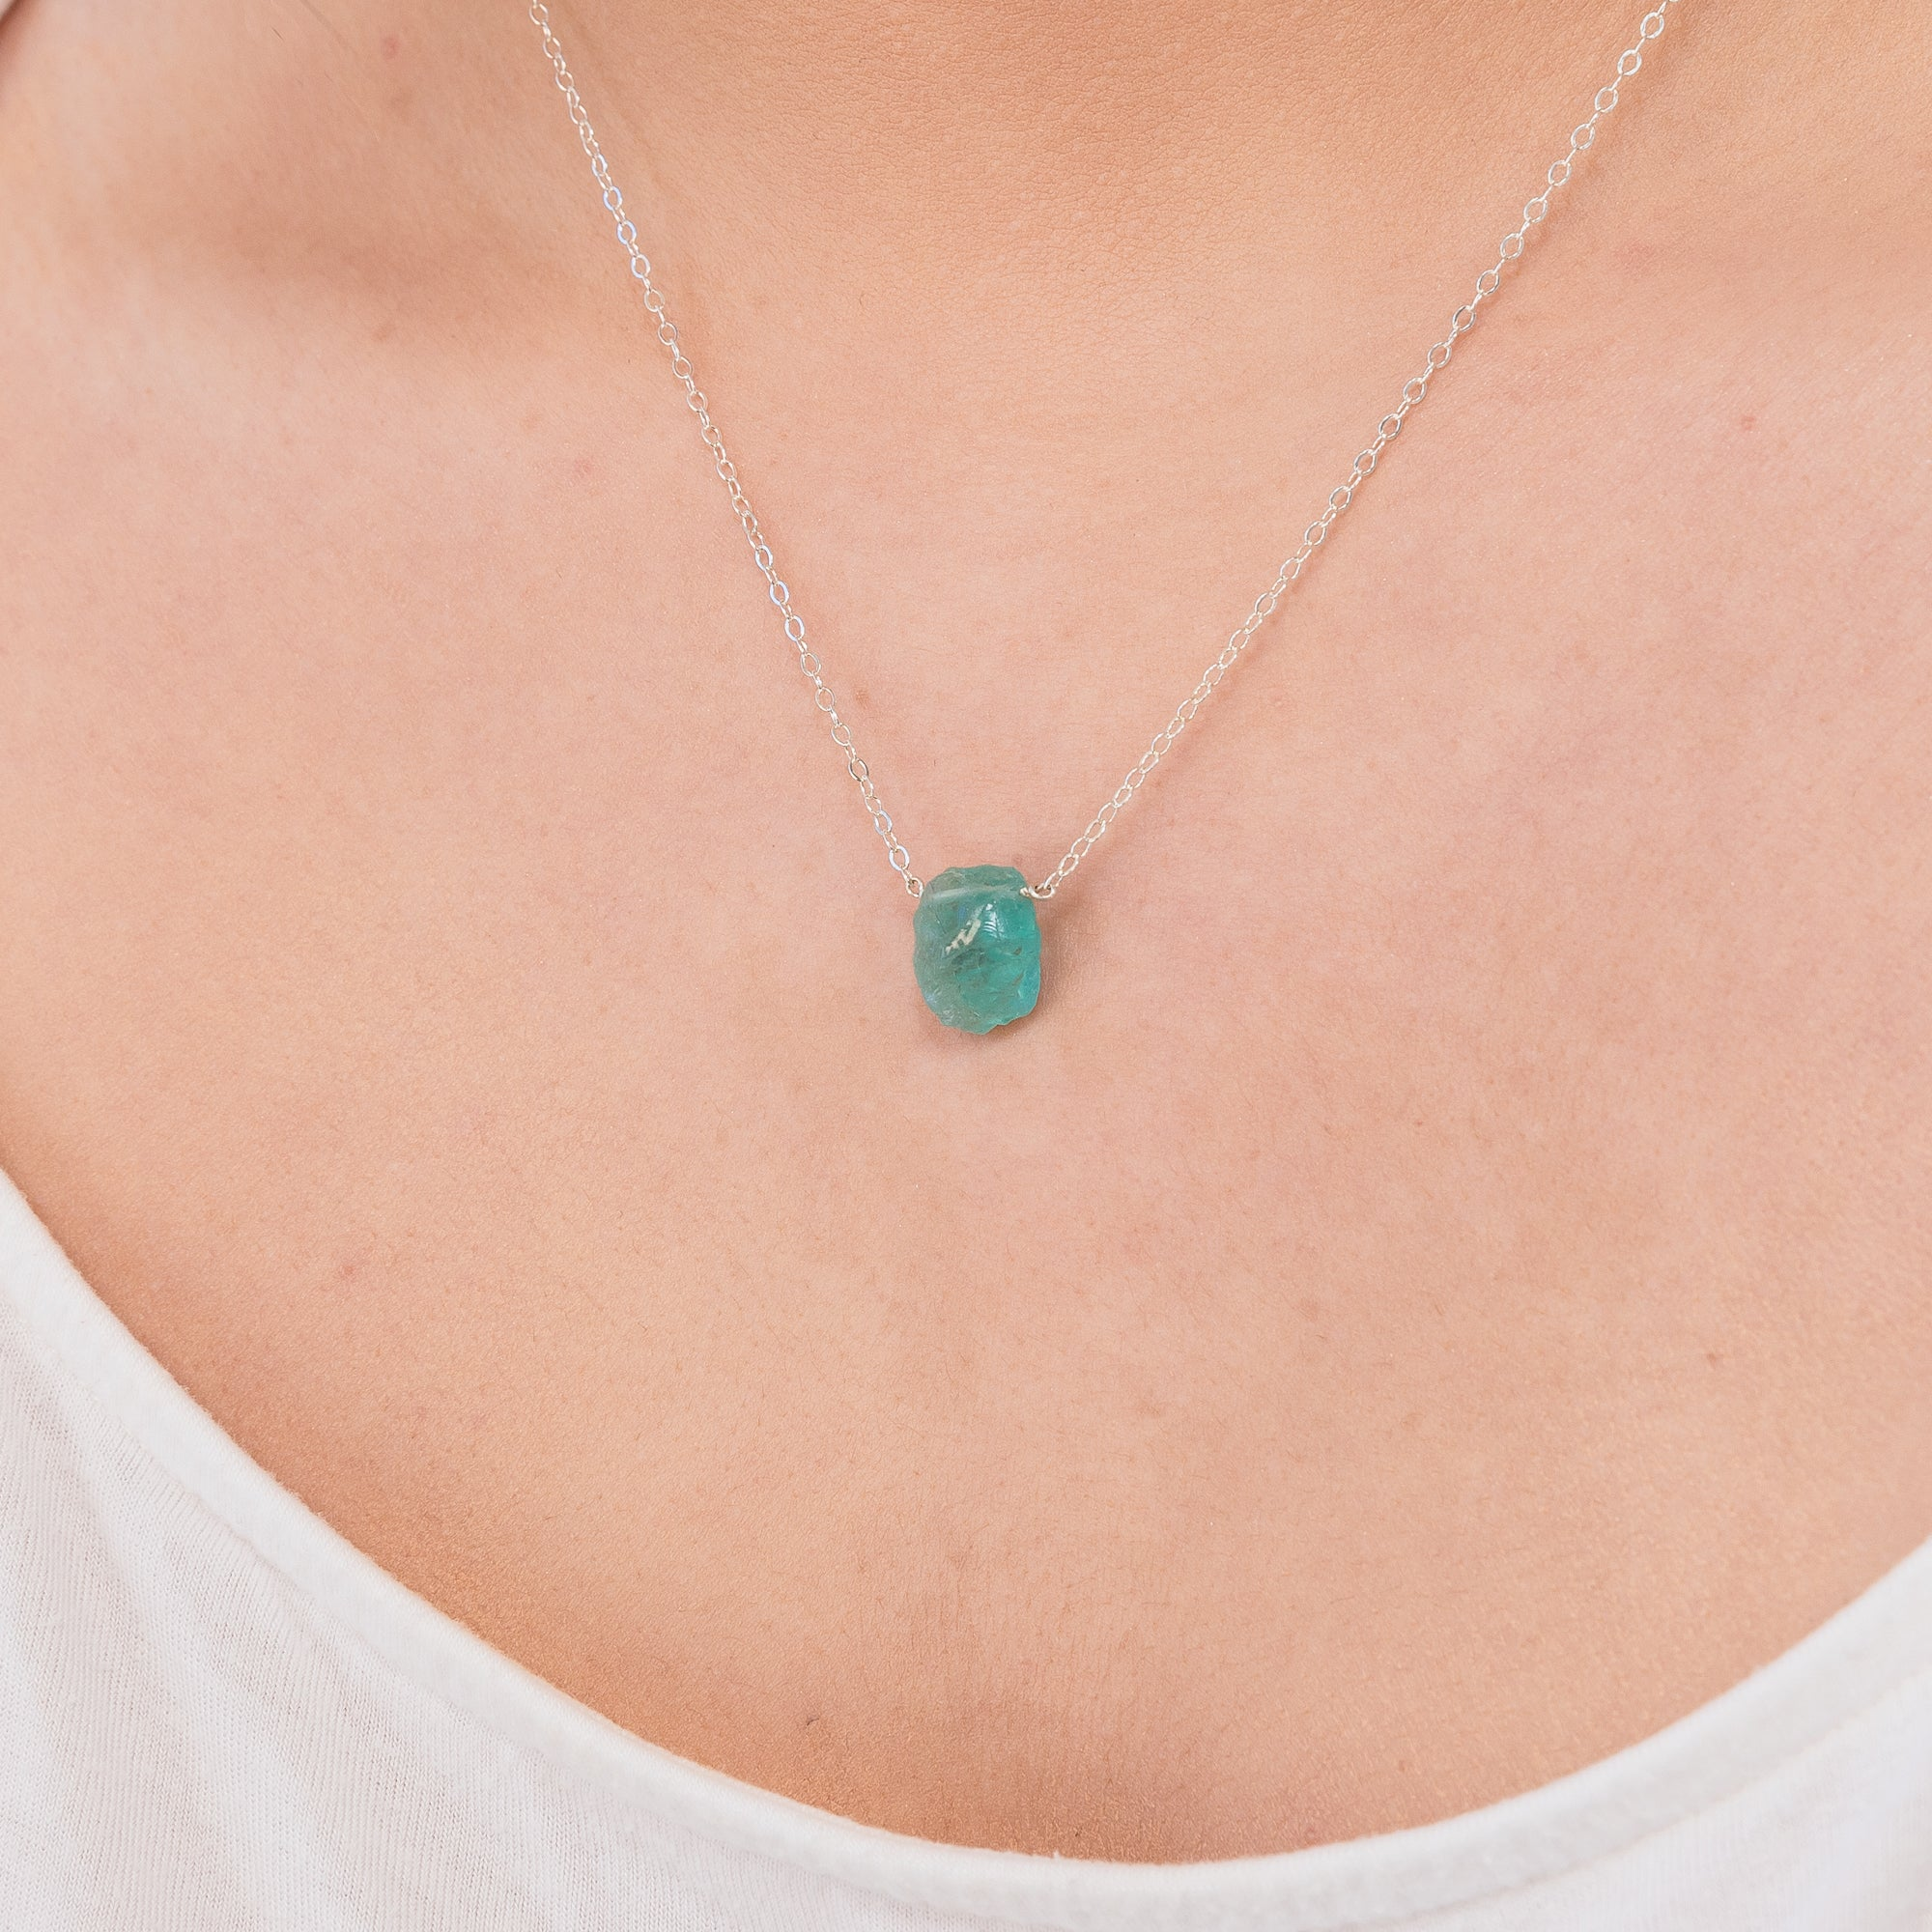 Raw Blue Apatite gemstone necklace